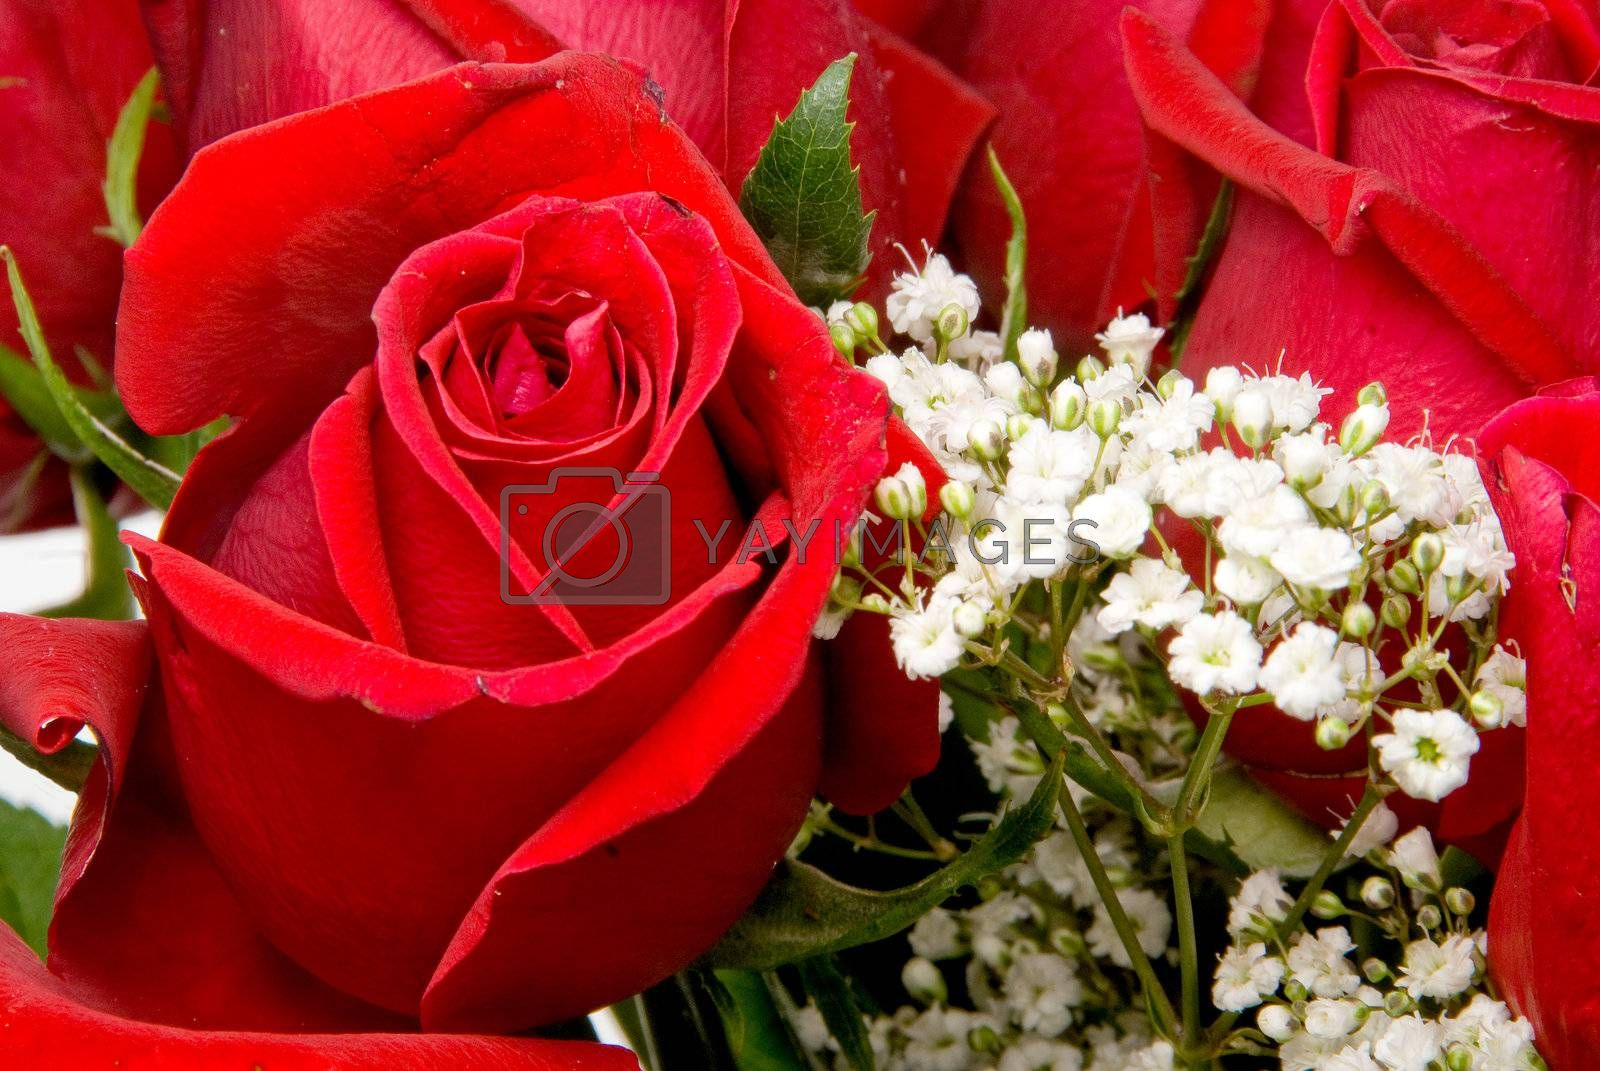 A beautiful red rose ready to make someone happy.